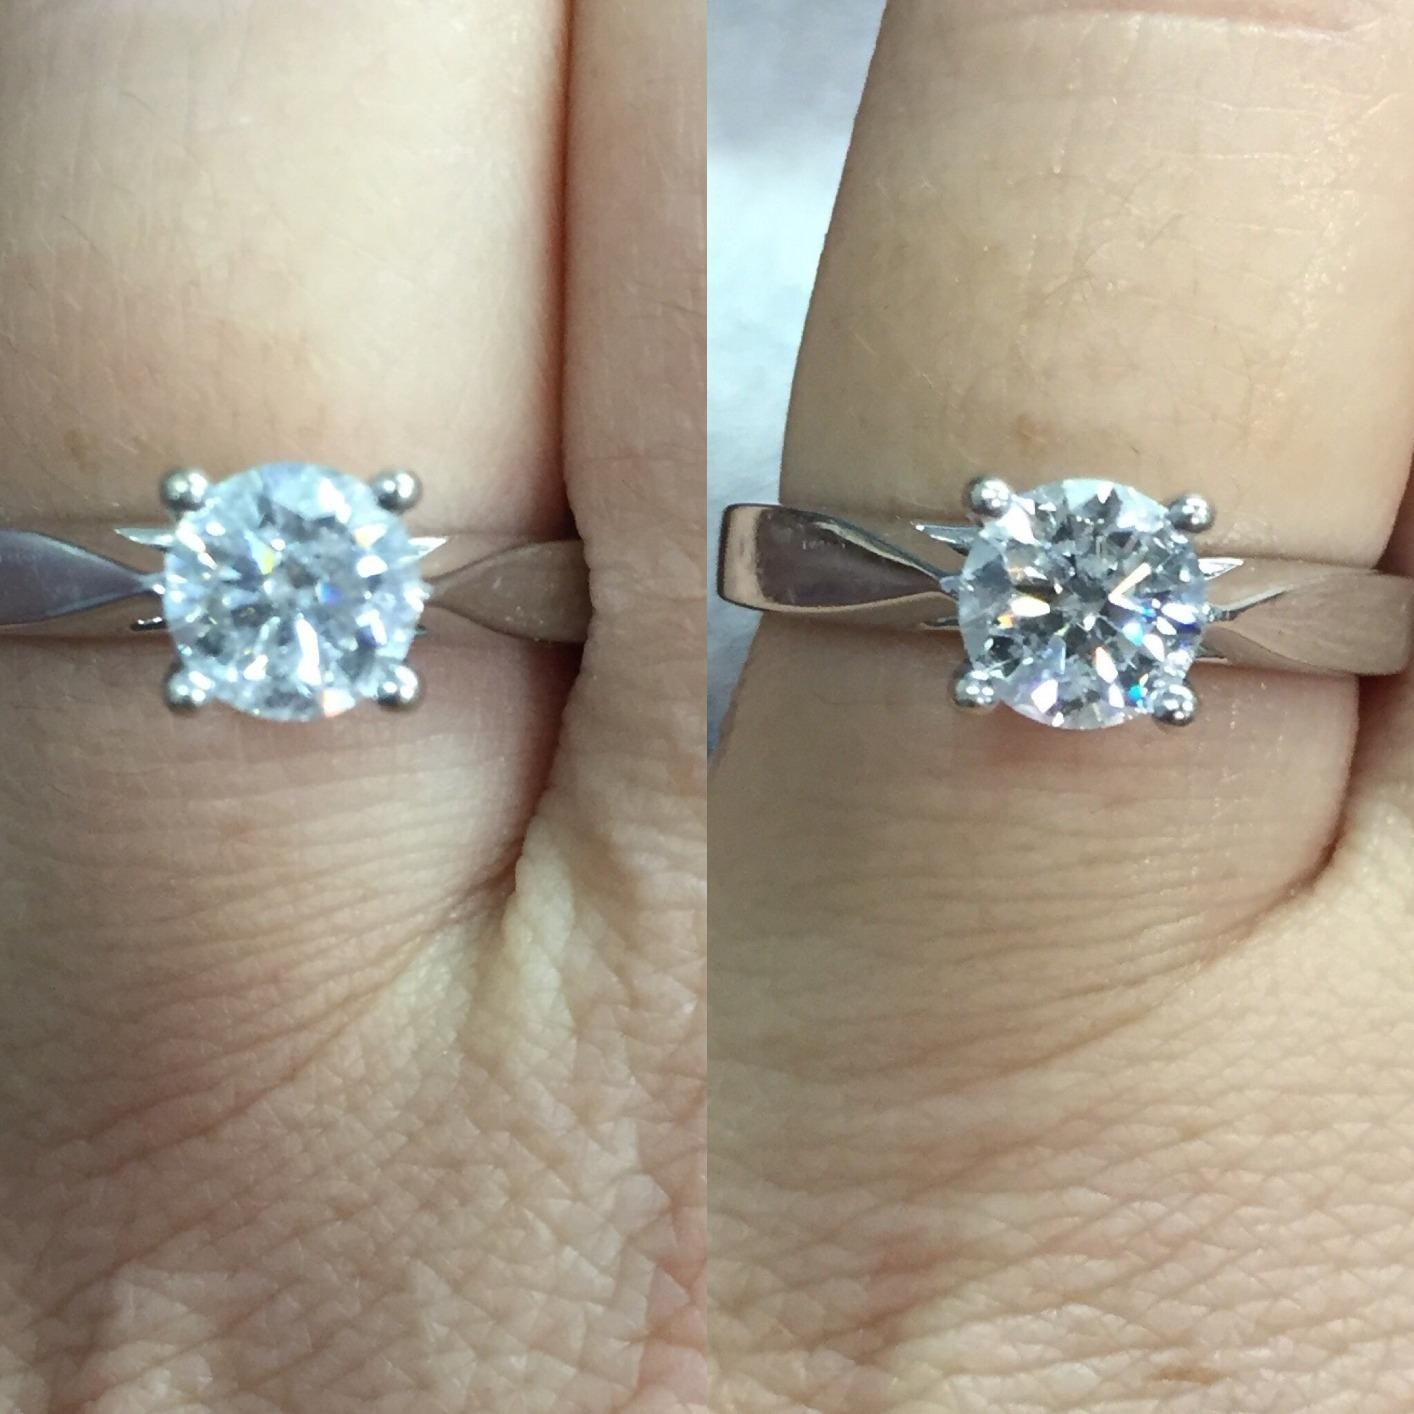 A solitaire diamond ring: on the left dirty and cloudy, and on the right sparkling and brilliant